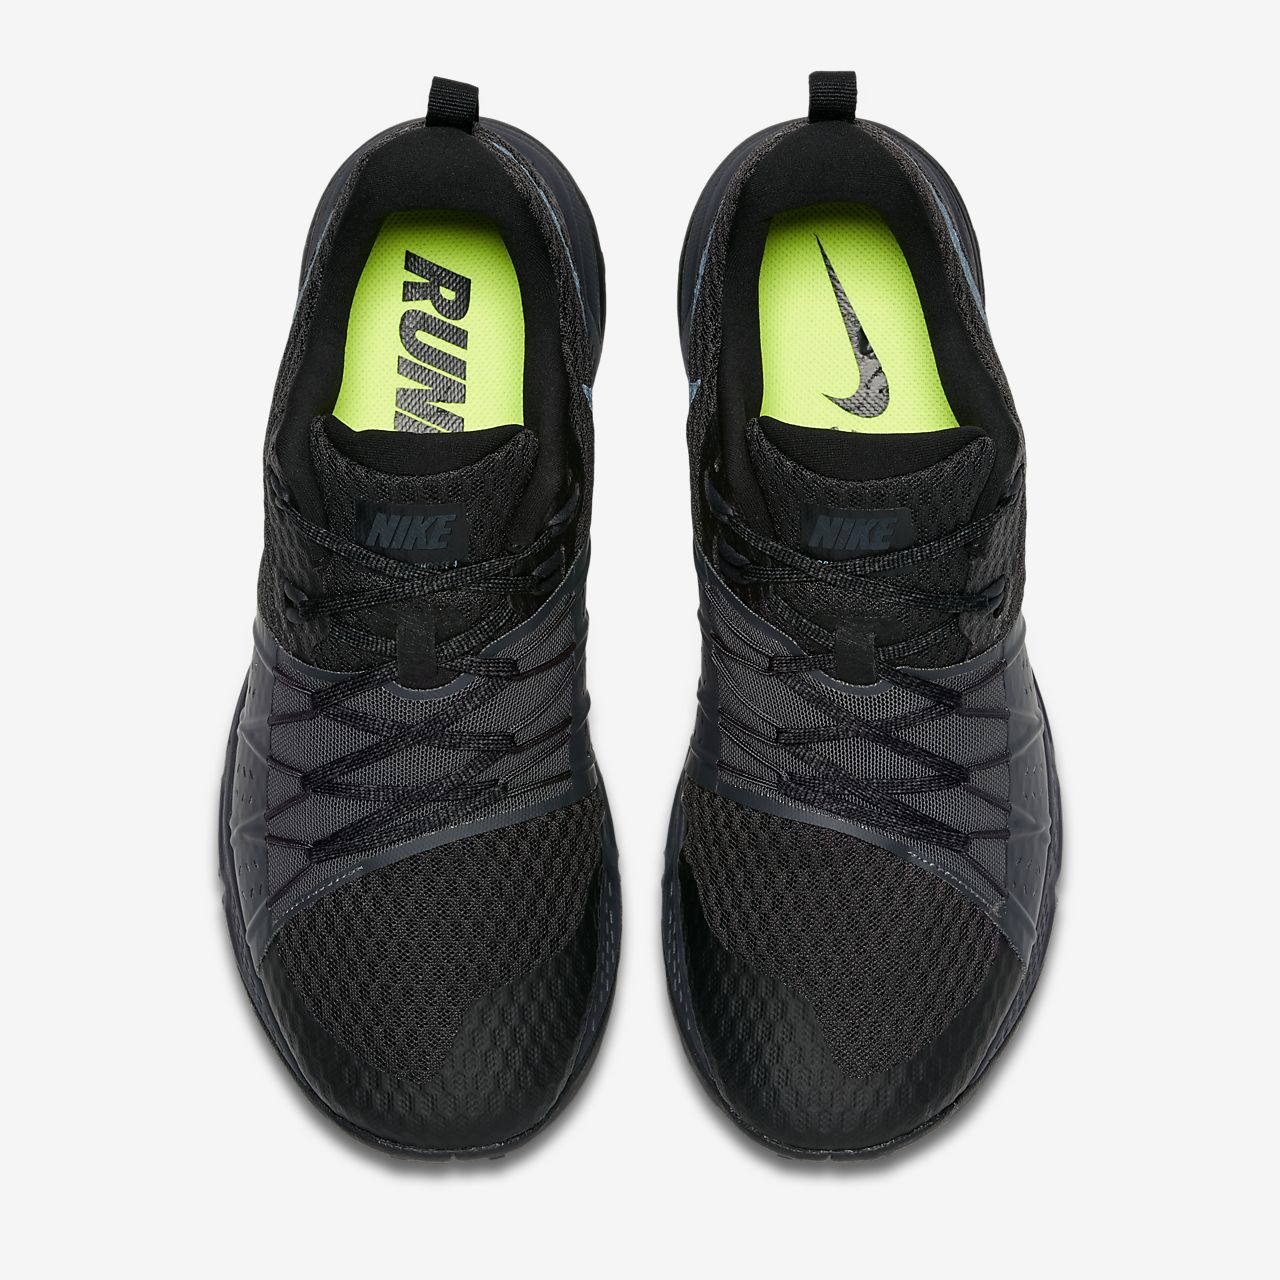 Low Resolution Nike Air Zoom Wildhorse 4 Men s Running Shoe Nike Air Zoom  Wildhorse 4 Men s Running Shoe a1e16fba0